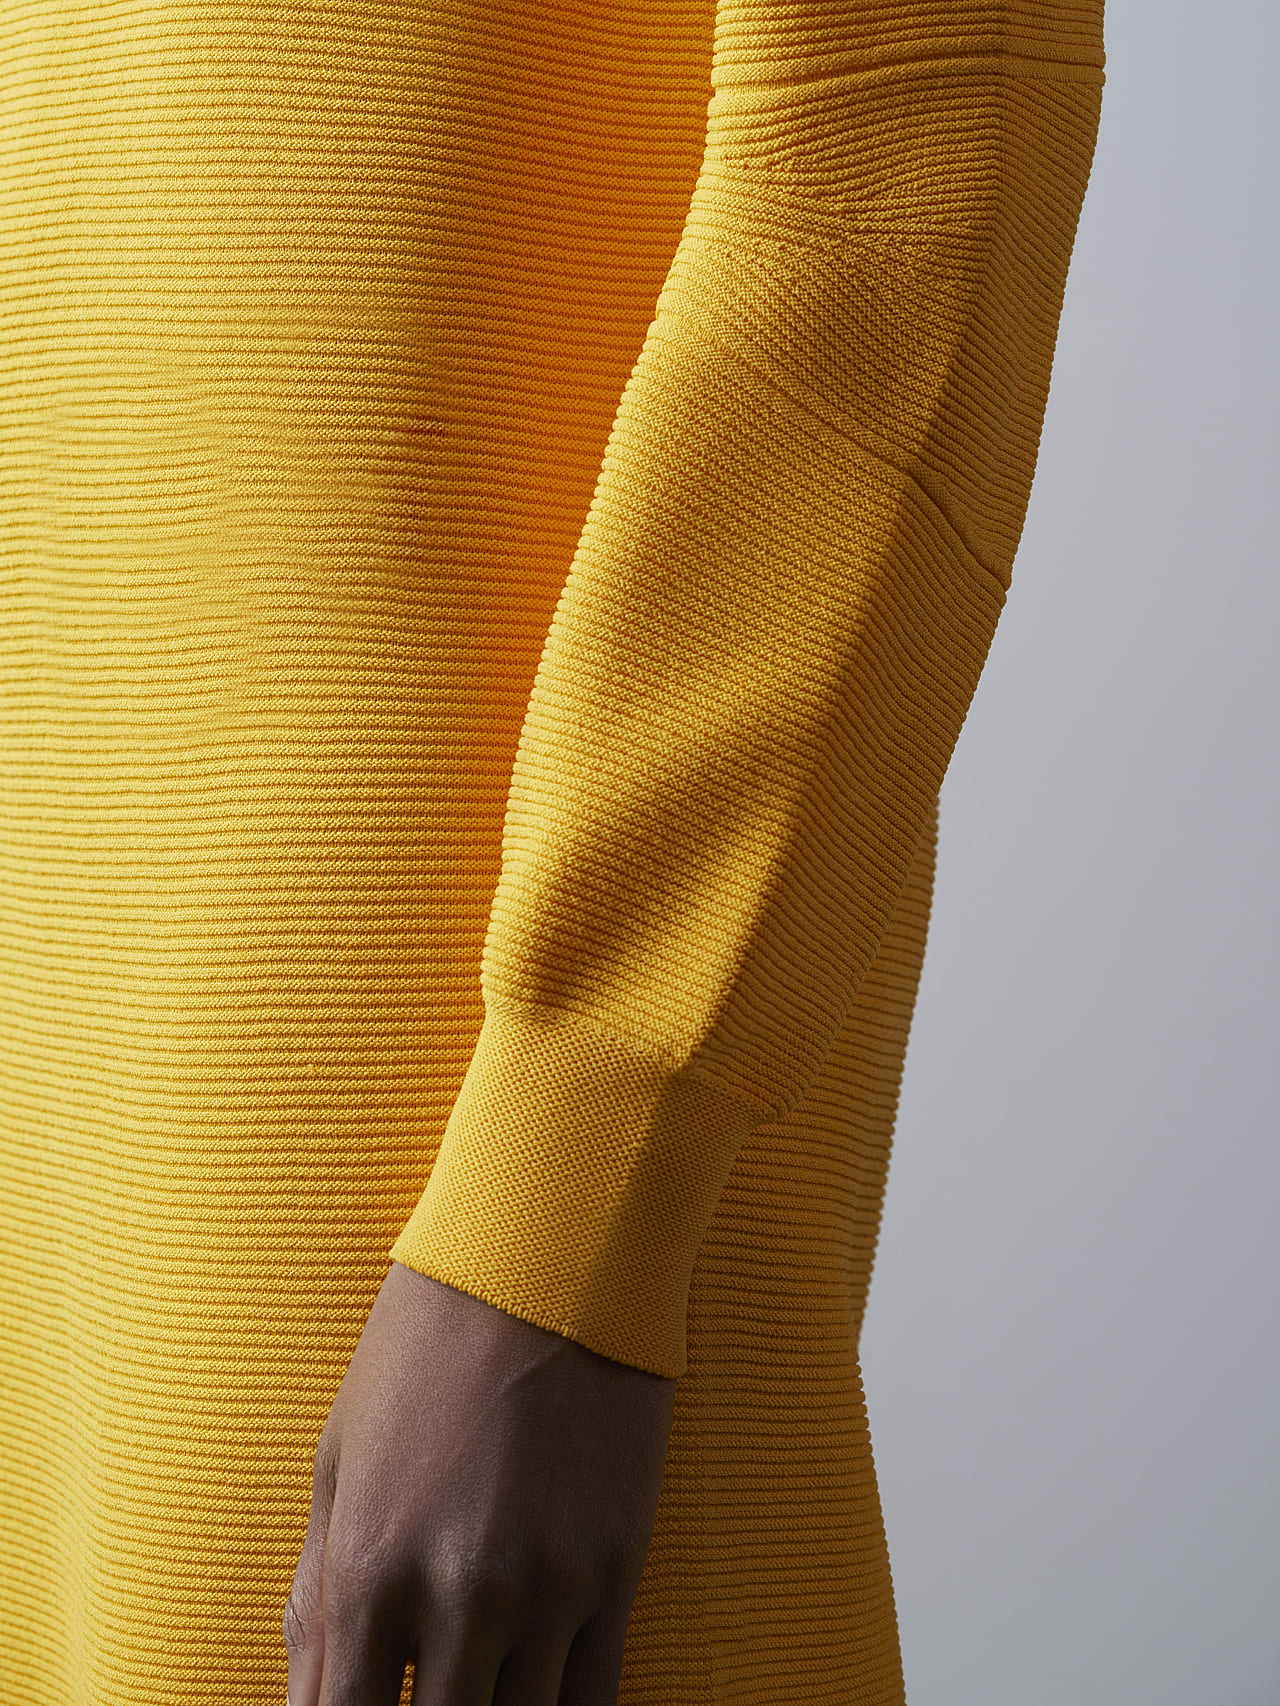 FOXEE V1.Y5.02 Seamless 3D Knit Mock-Neck Dress yellow scene7.view.8.name Alpha Tauri